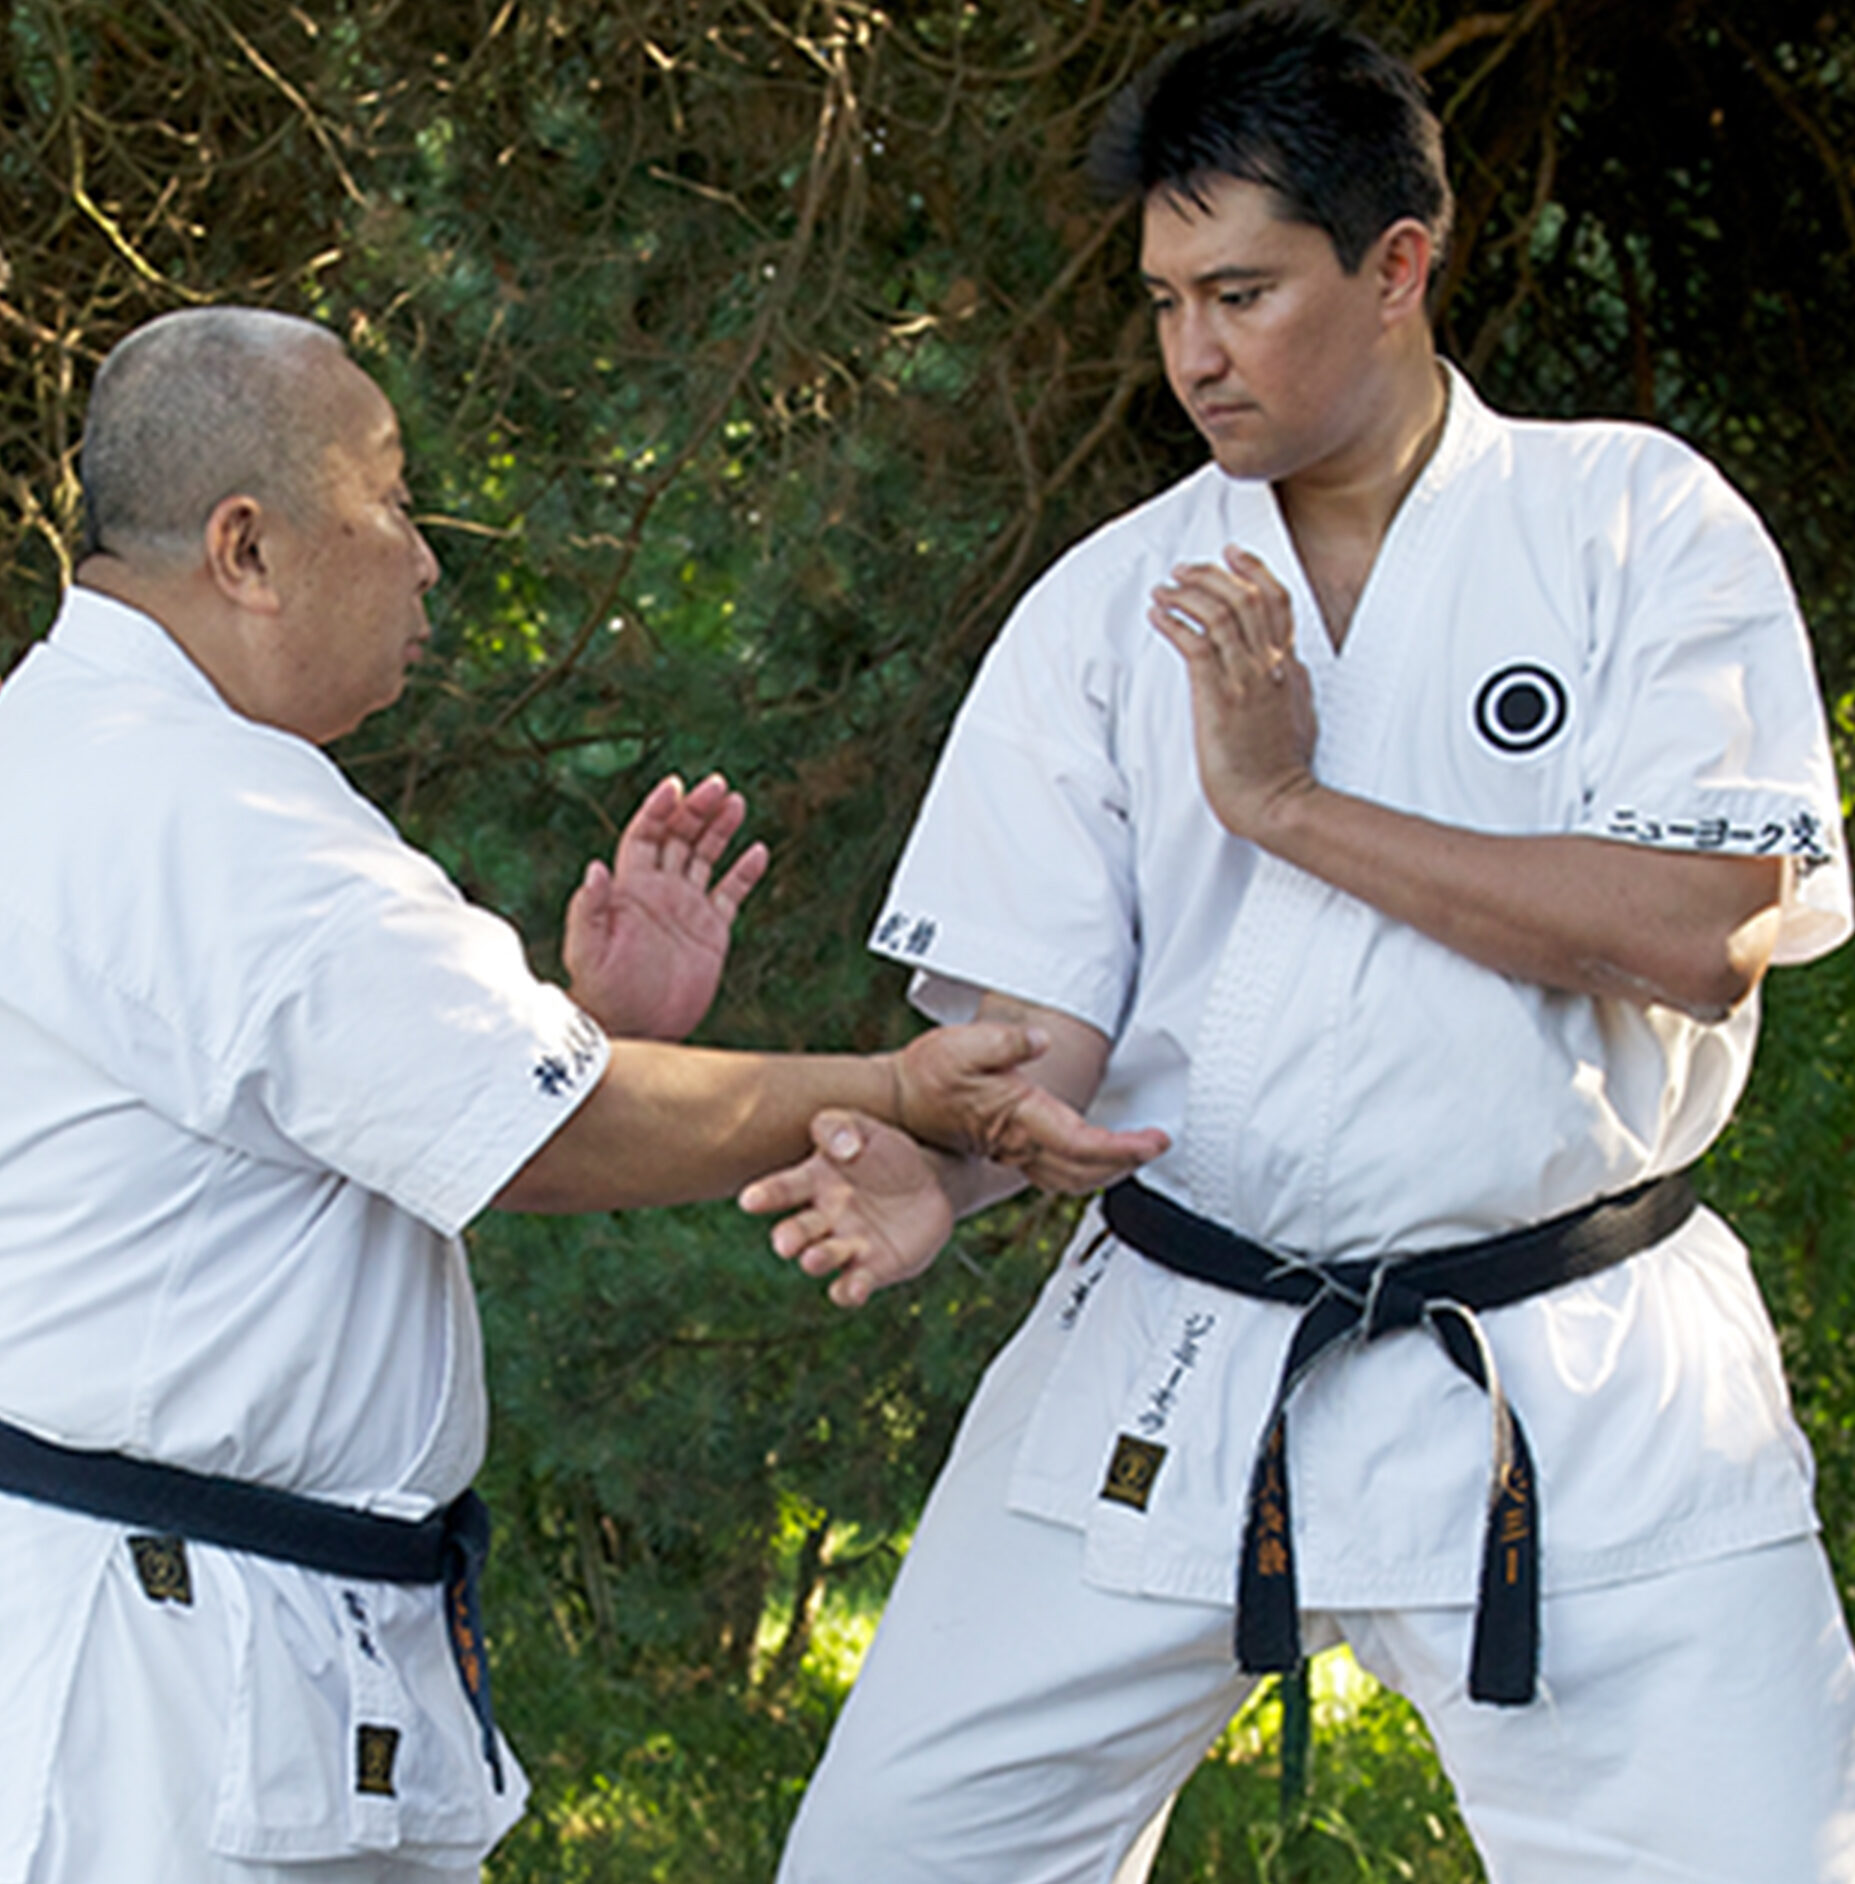 Jimmy_with_Onaga_Sensei_2010